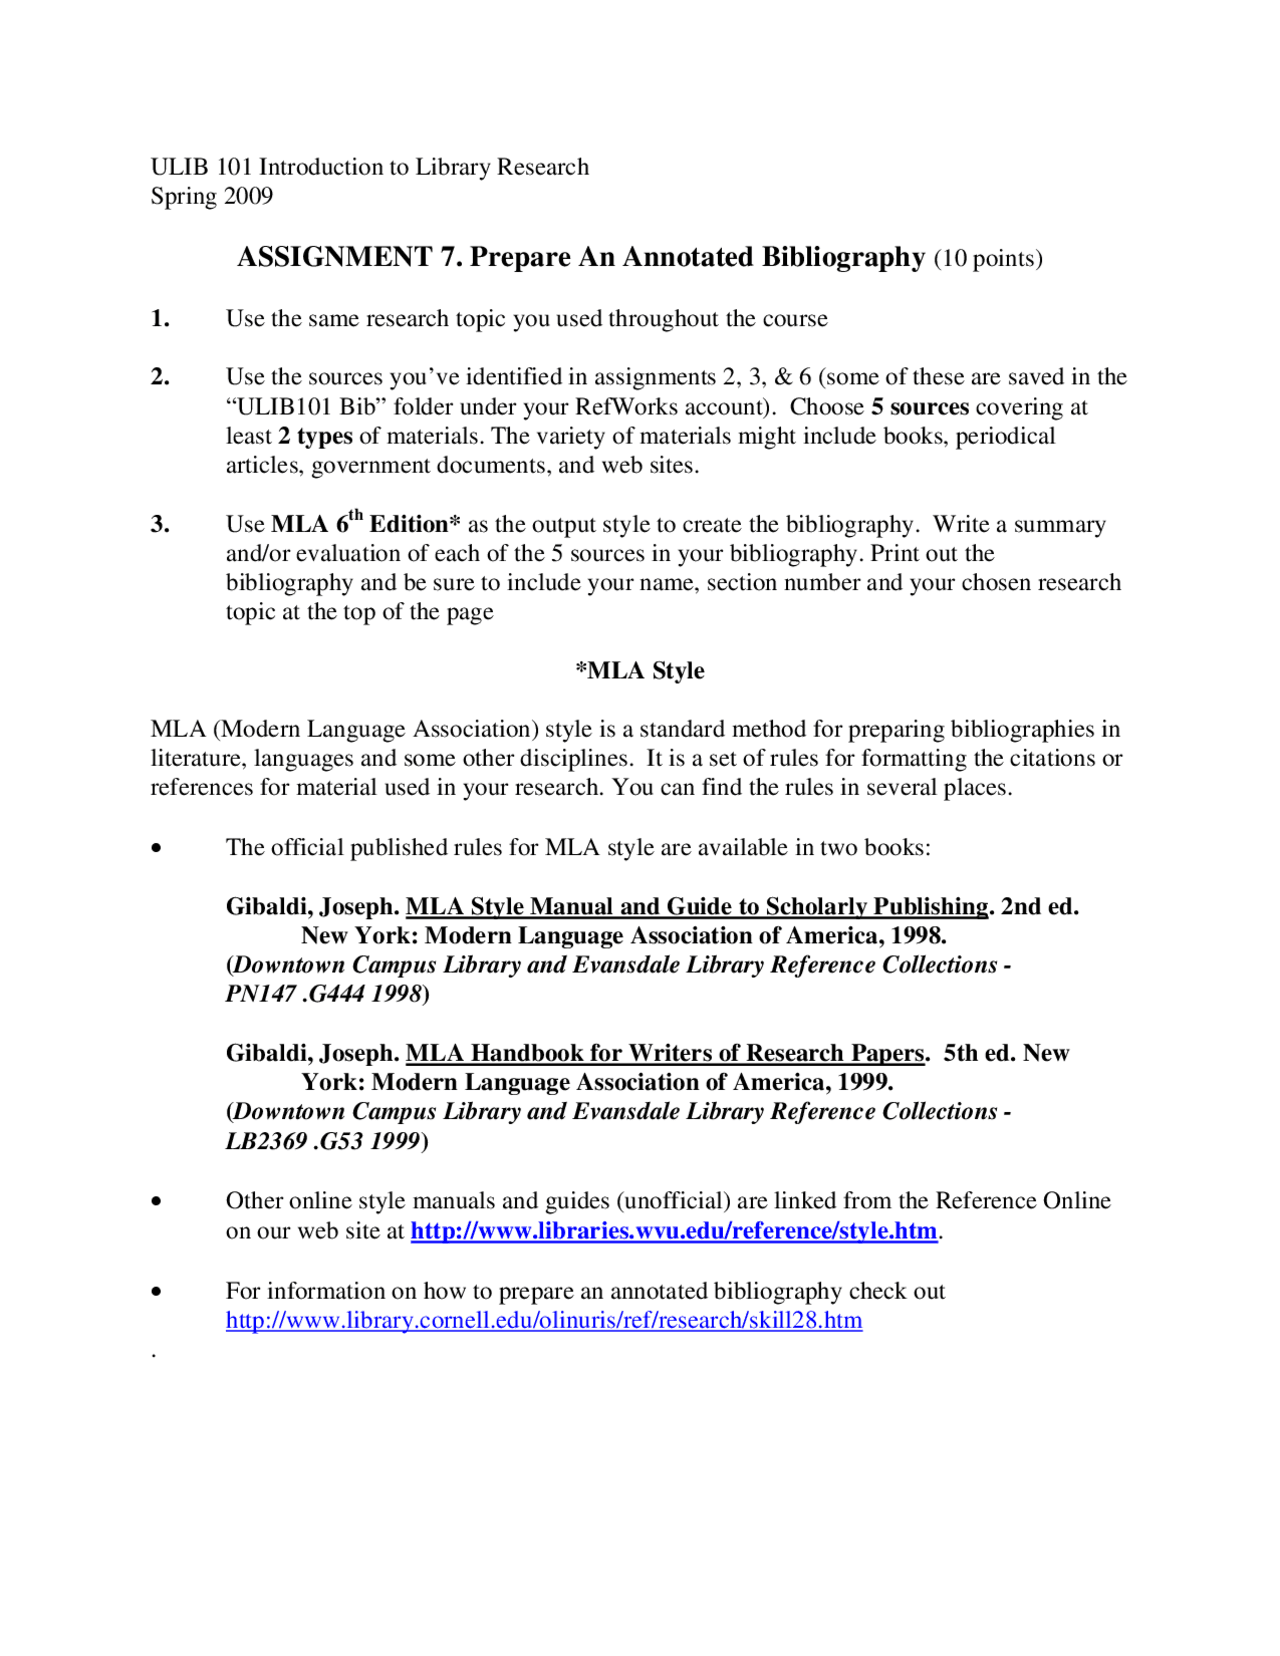 Top university annotated bibliography help ps100 brooklyn homework